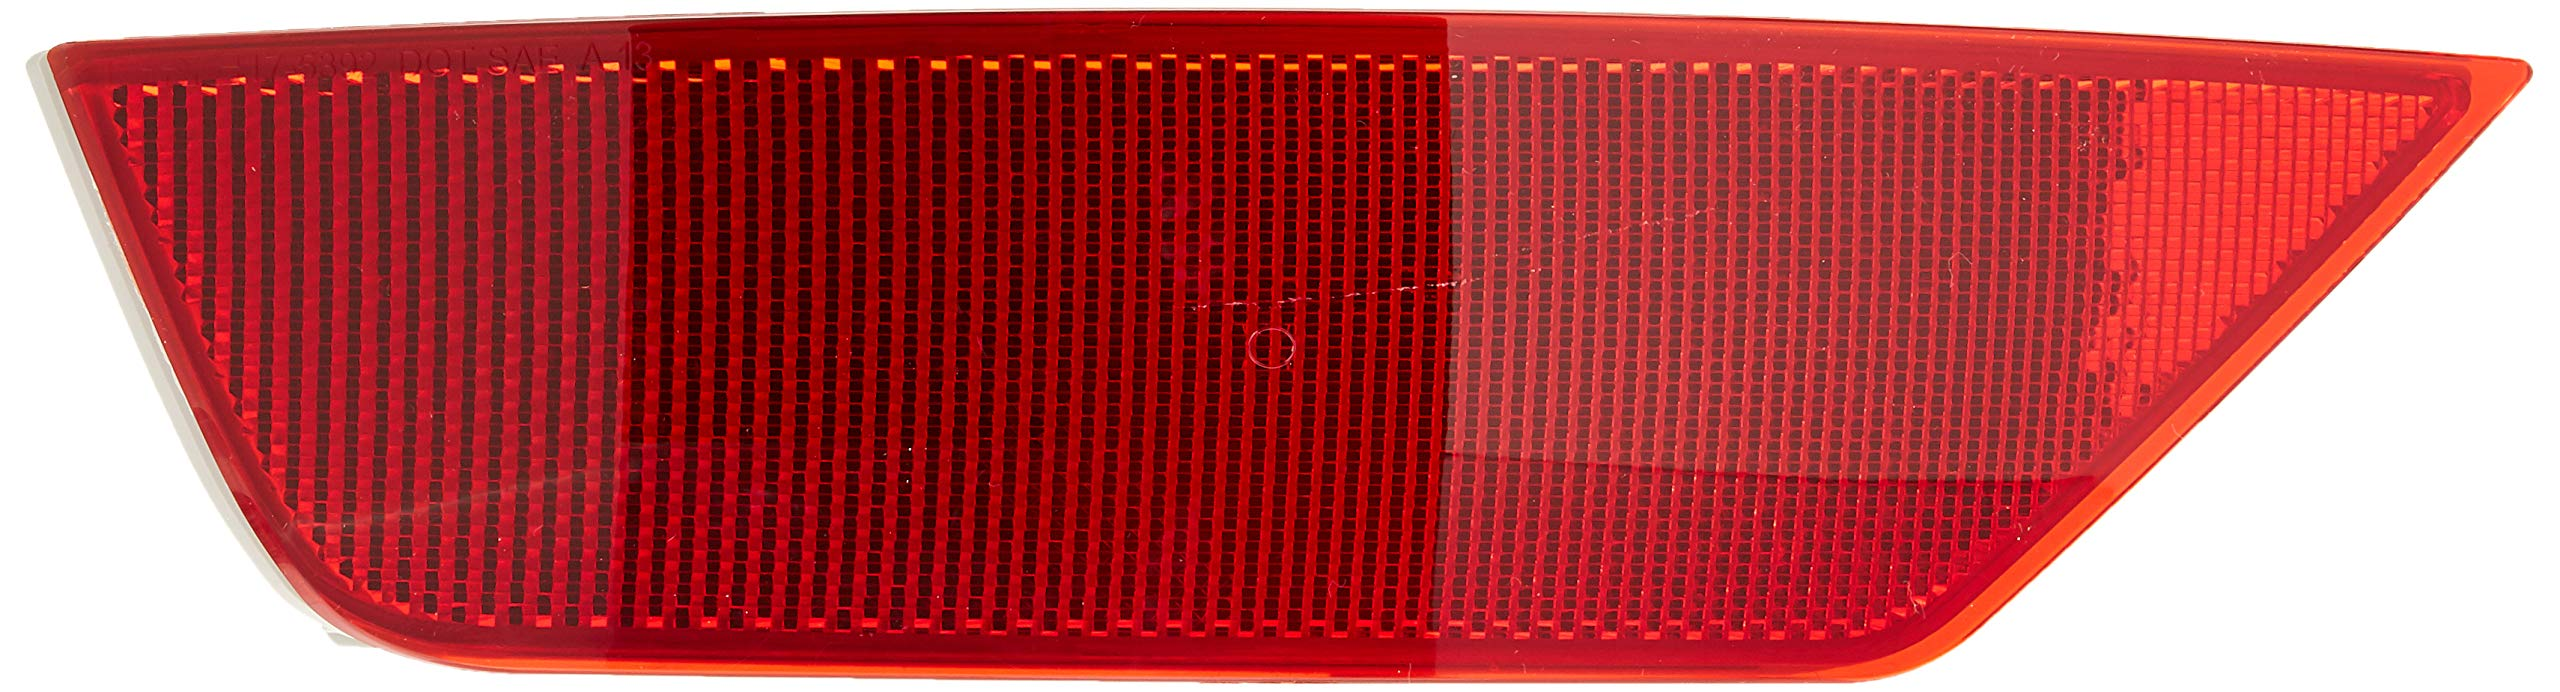 TYC 17-5392-00-1 Ford Escape Left Replacement Reflex Reflector